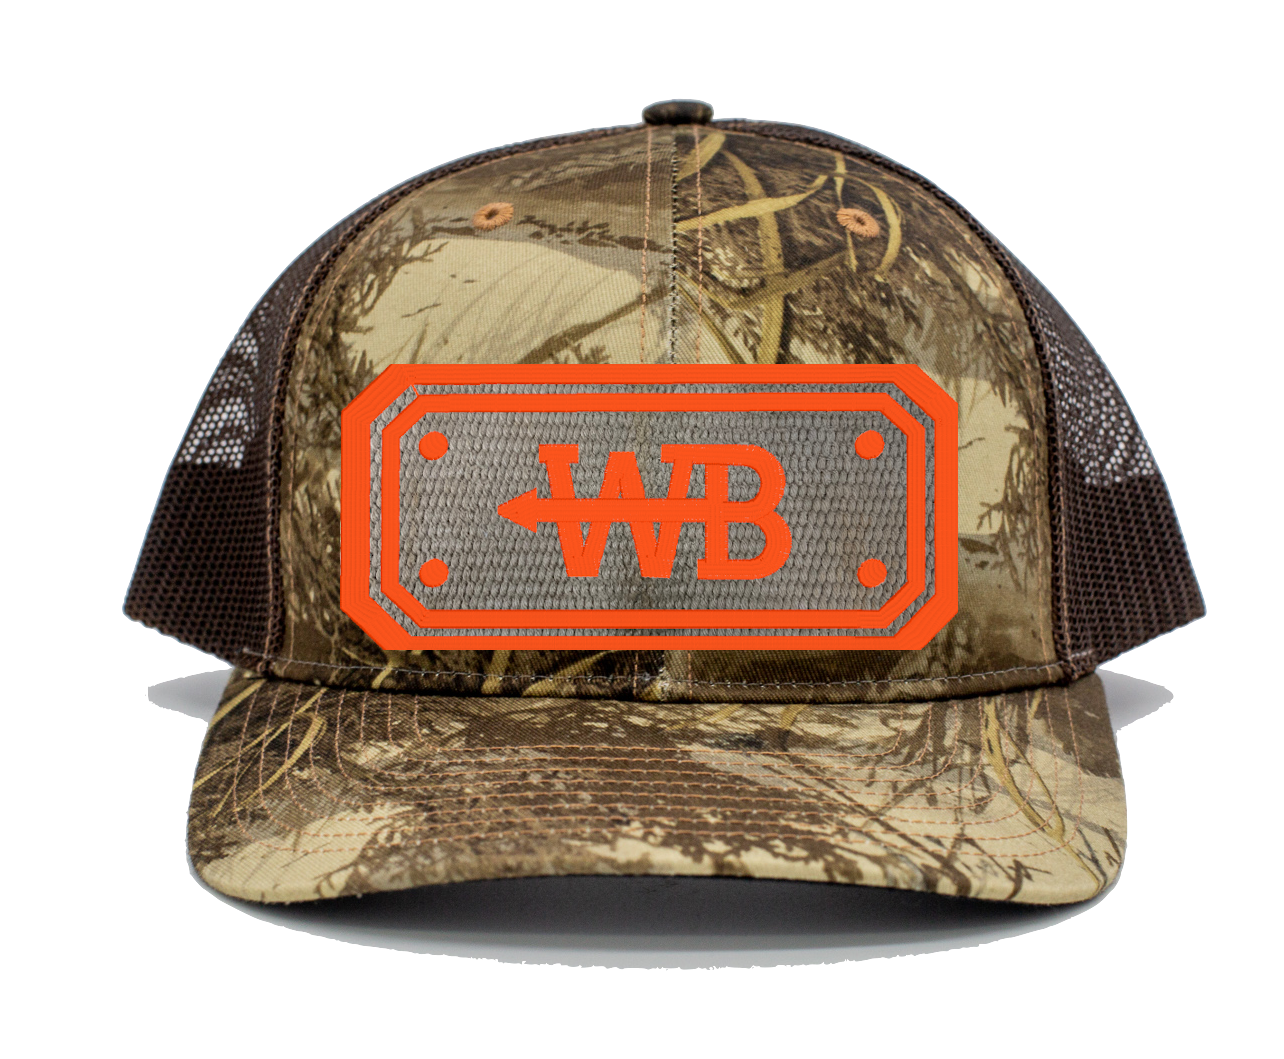 Hose Hat - Realtree Max 1 XT/Brown